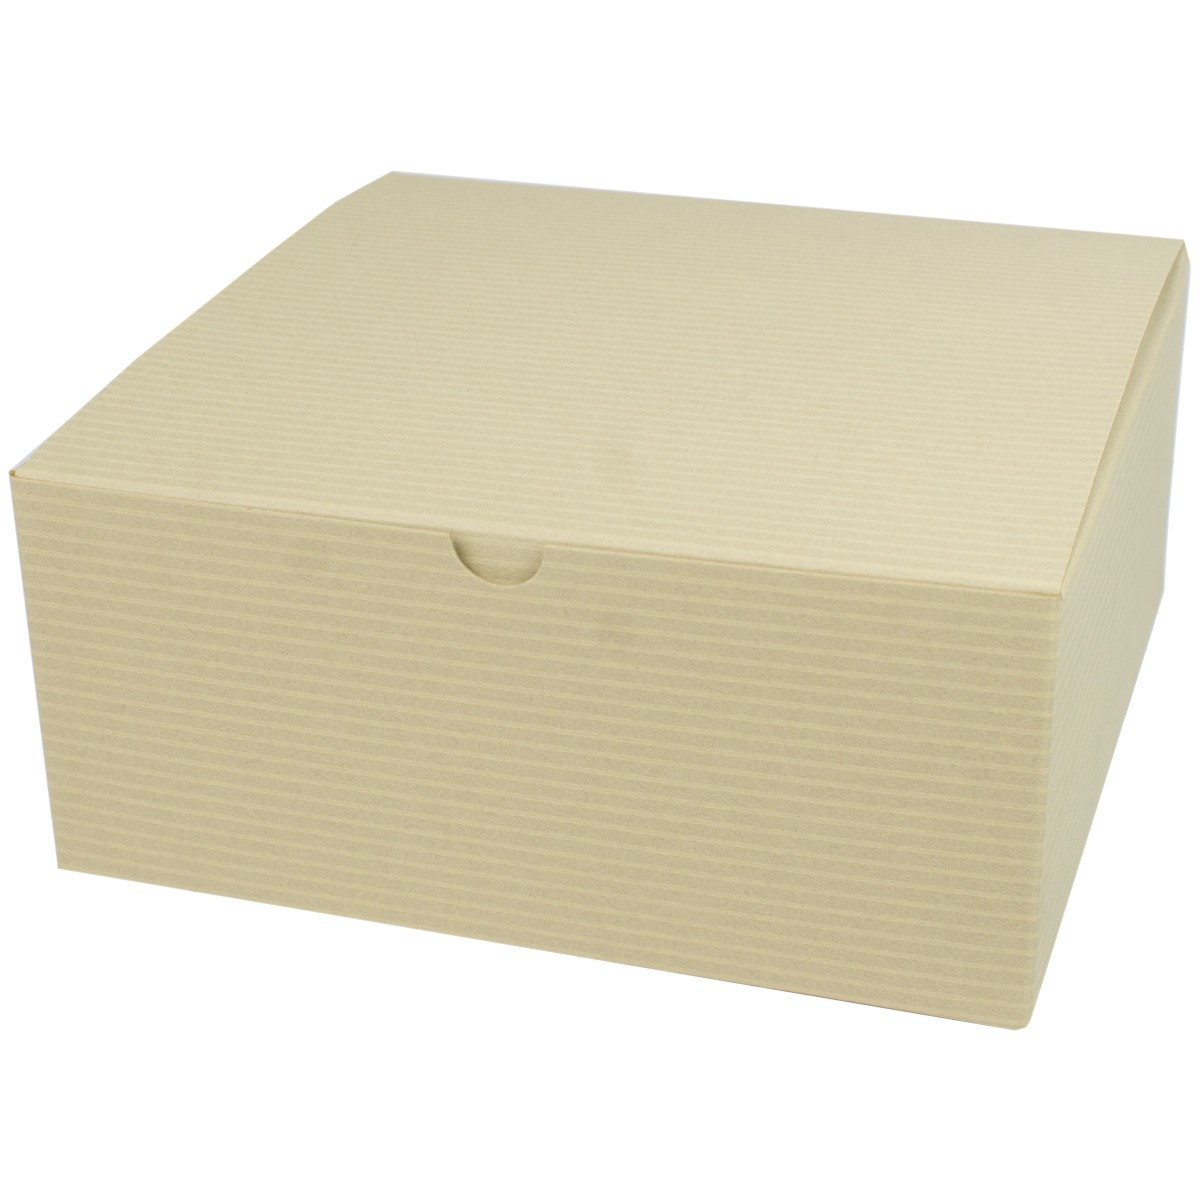 8 x 8 x 3.5 OATMEAL TINTED TUCK-TOP GIFT BOXES